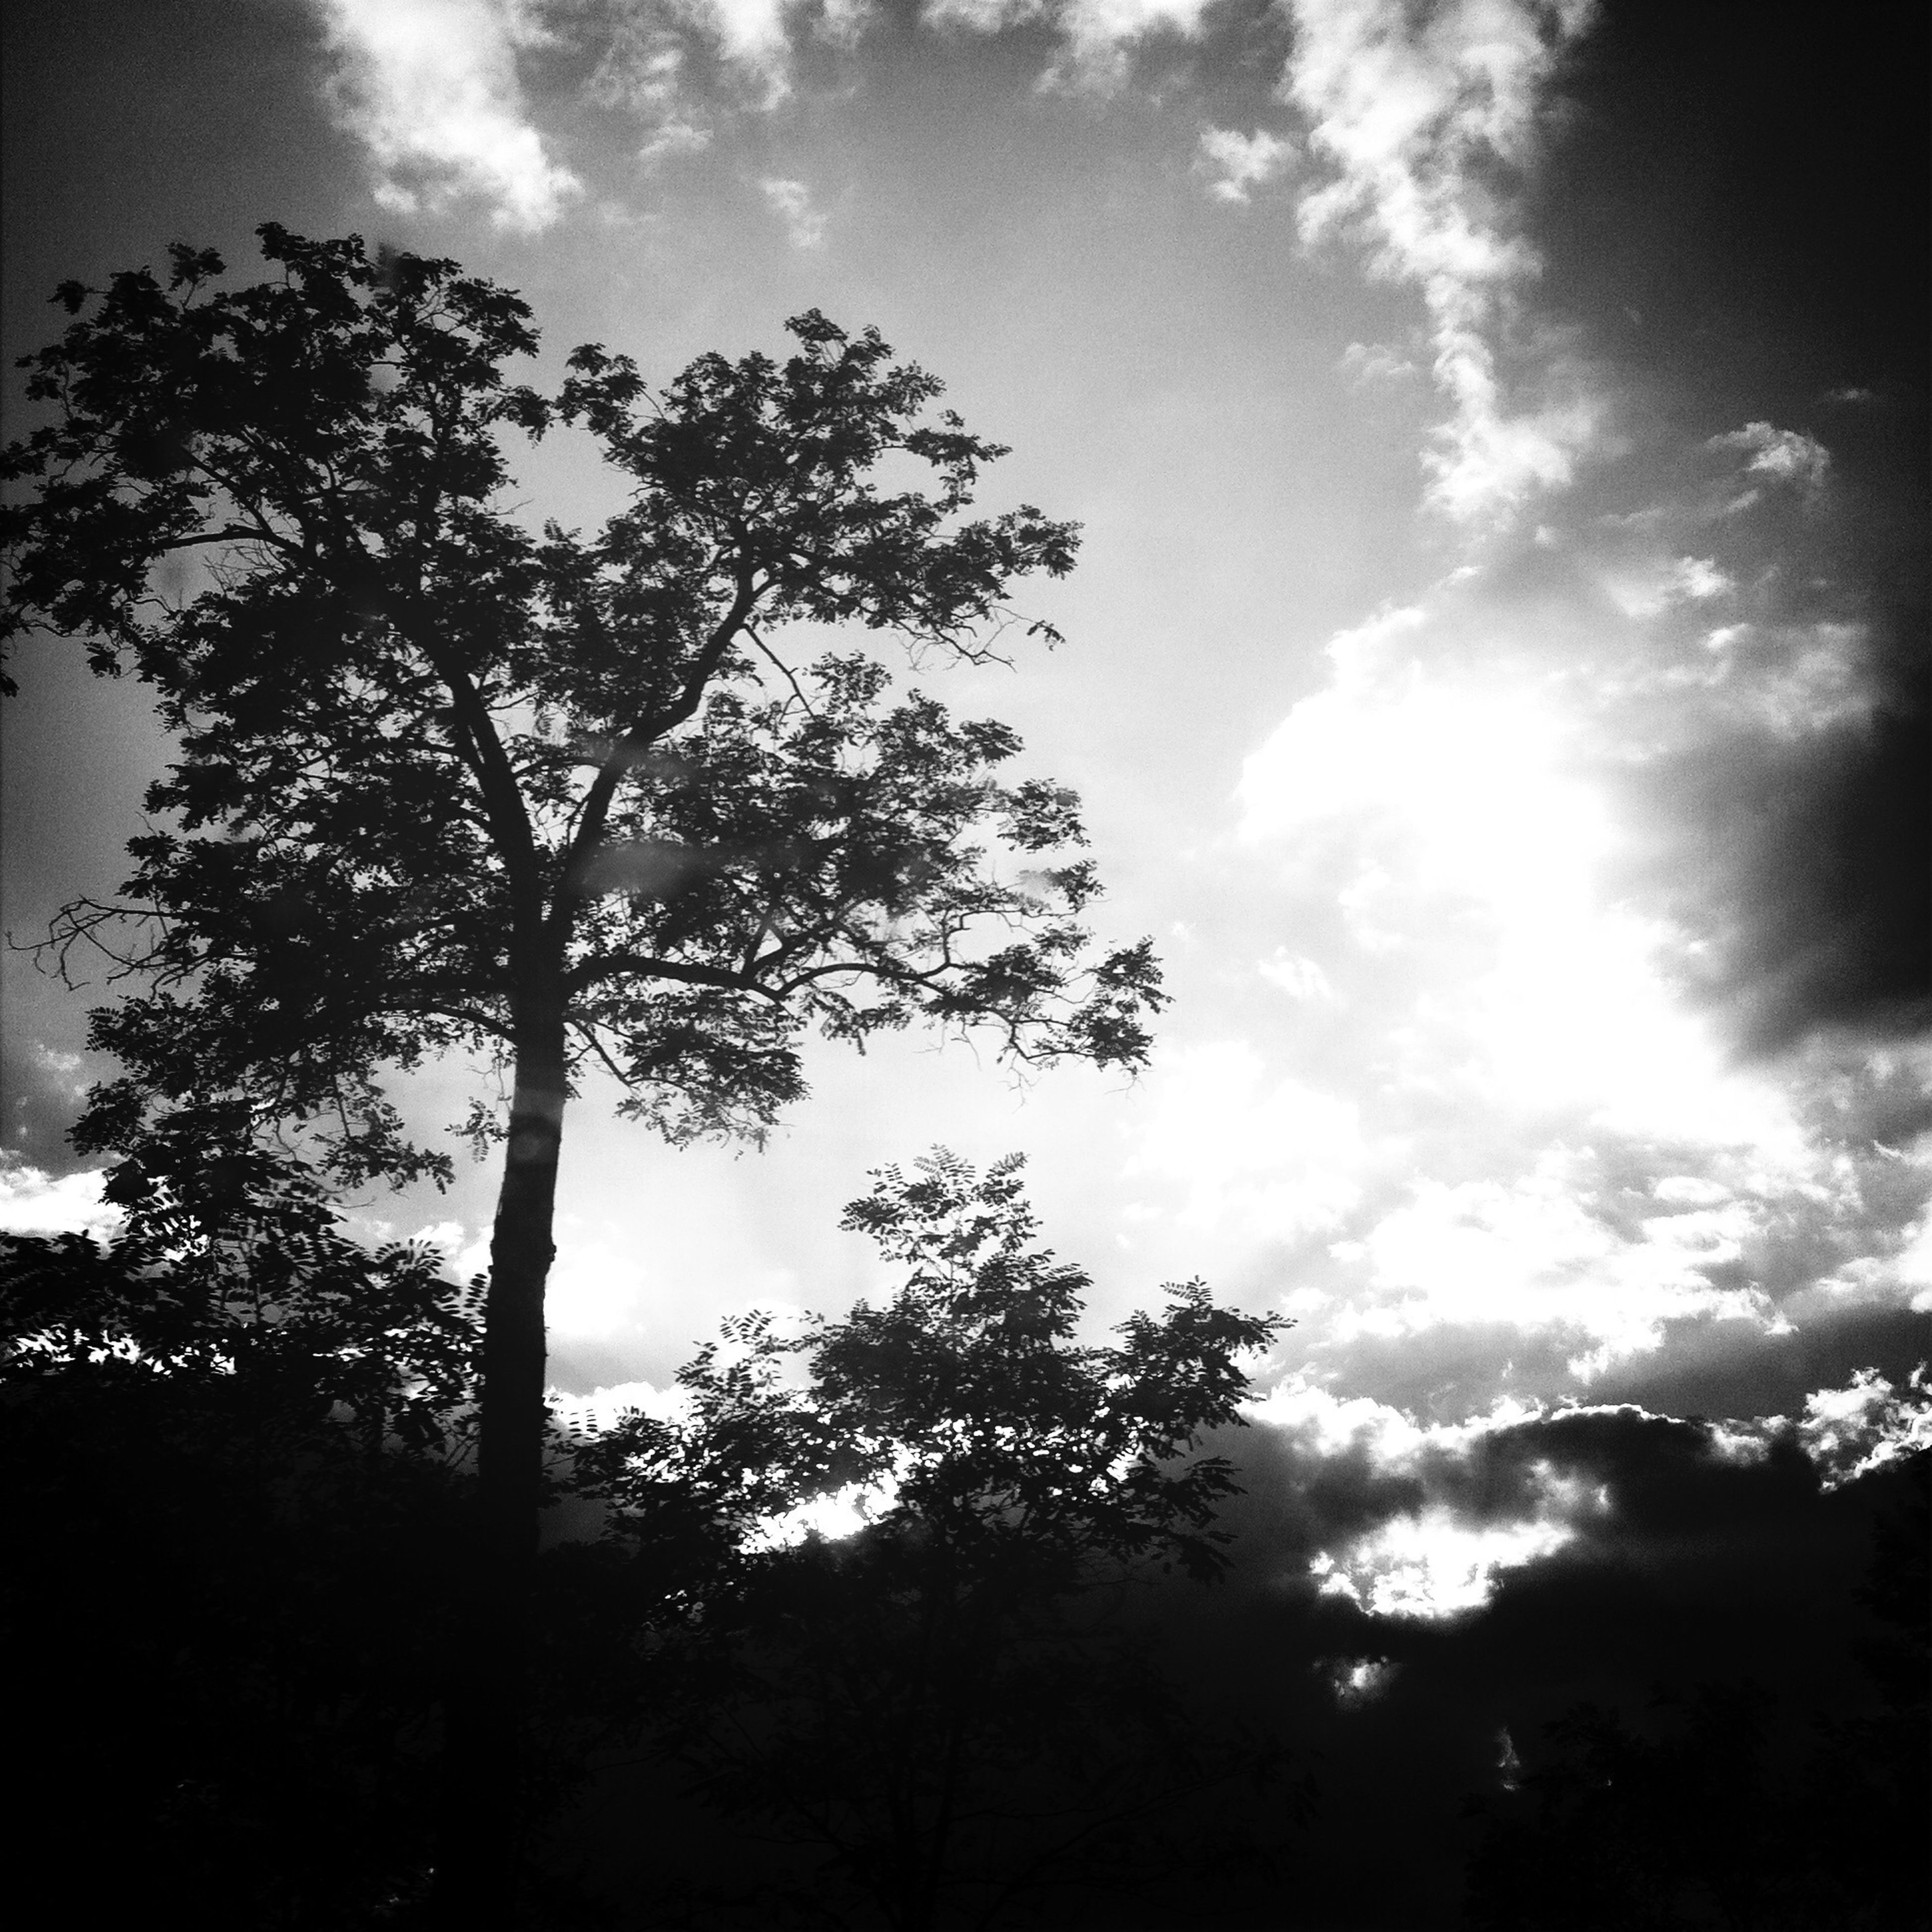 tree, silhouette, sky, low angle view, tranquility, cloud - sky, beauty in nature, tranquil scene, scenics, nature, growth, cloudy, cloud, branch, idyllic, outdoors, sunlight, no people, non-urban scene, non urban scene